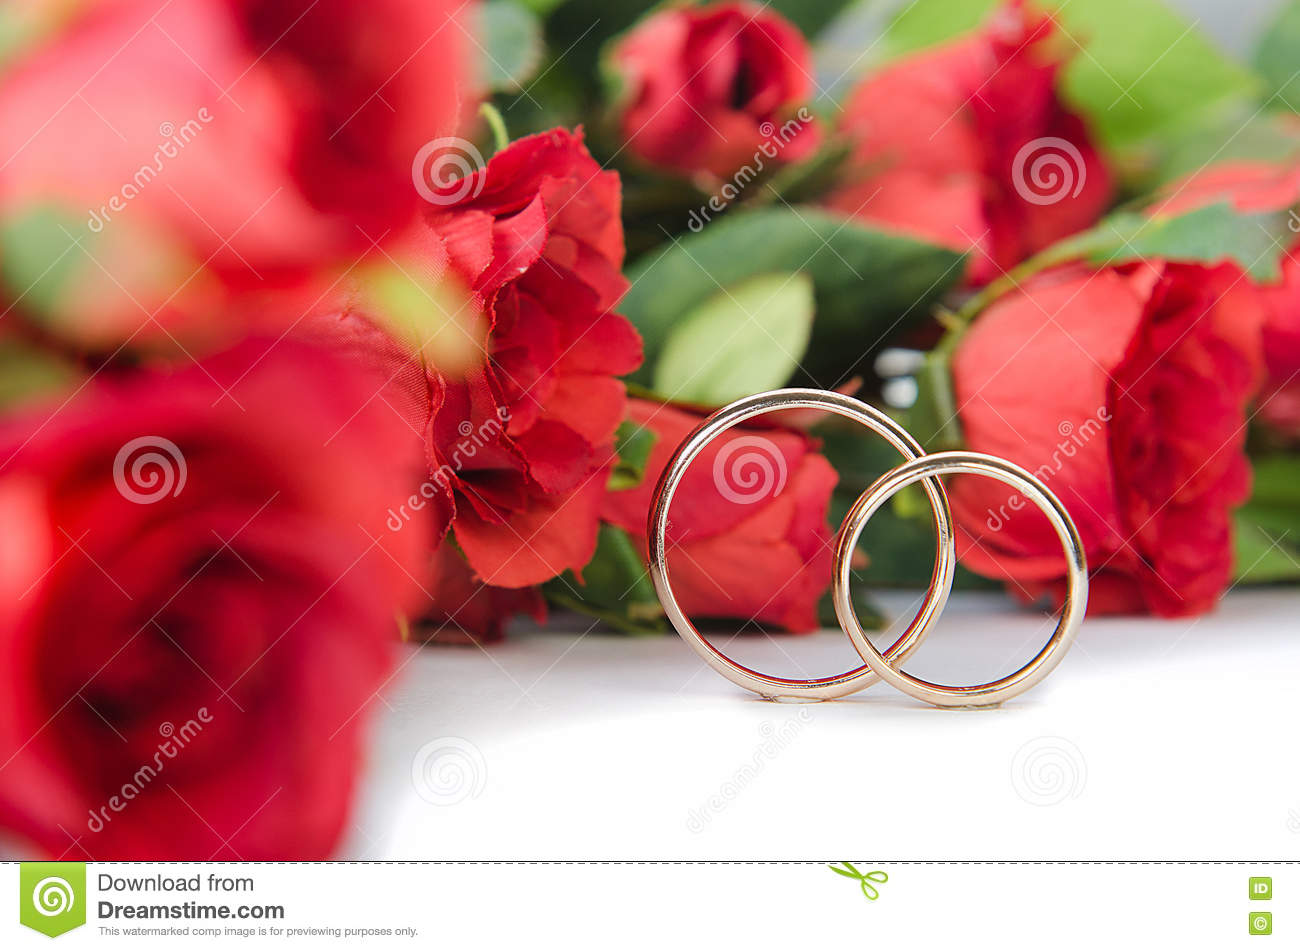 The wedding rings and flowers on white background